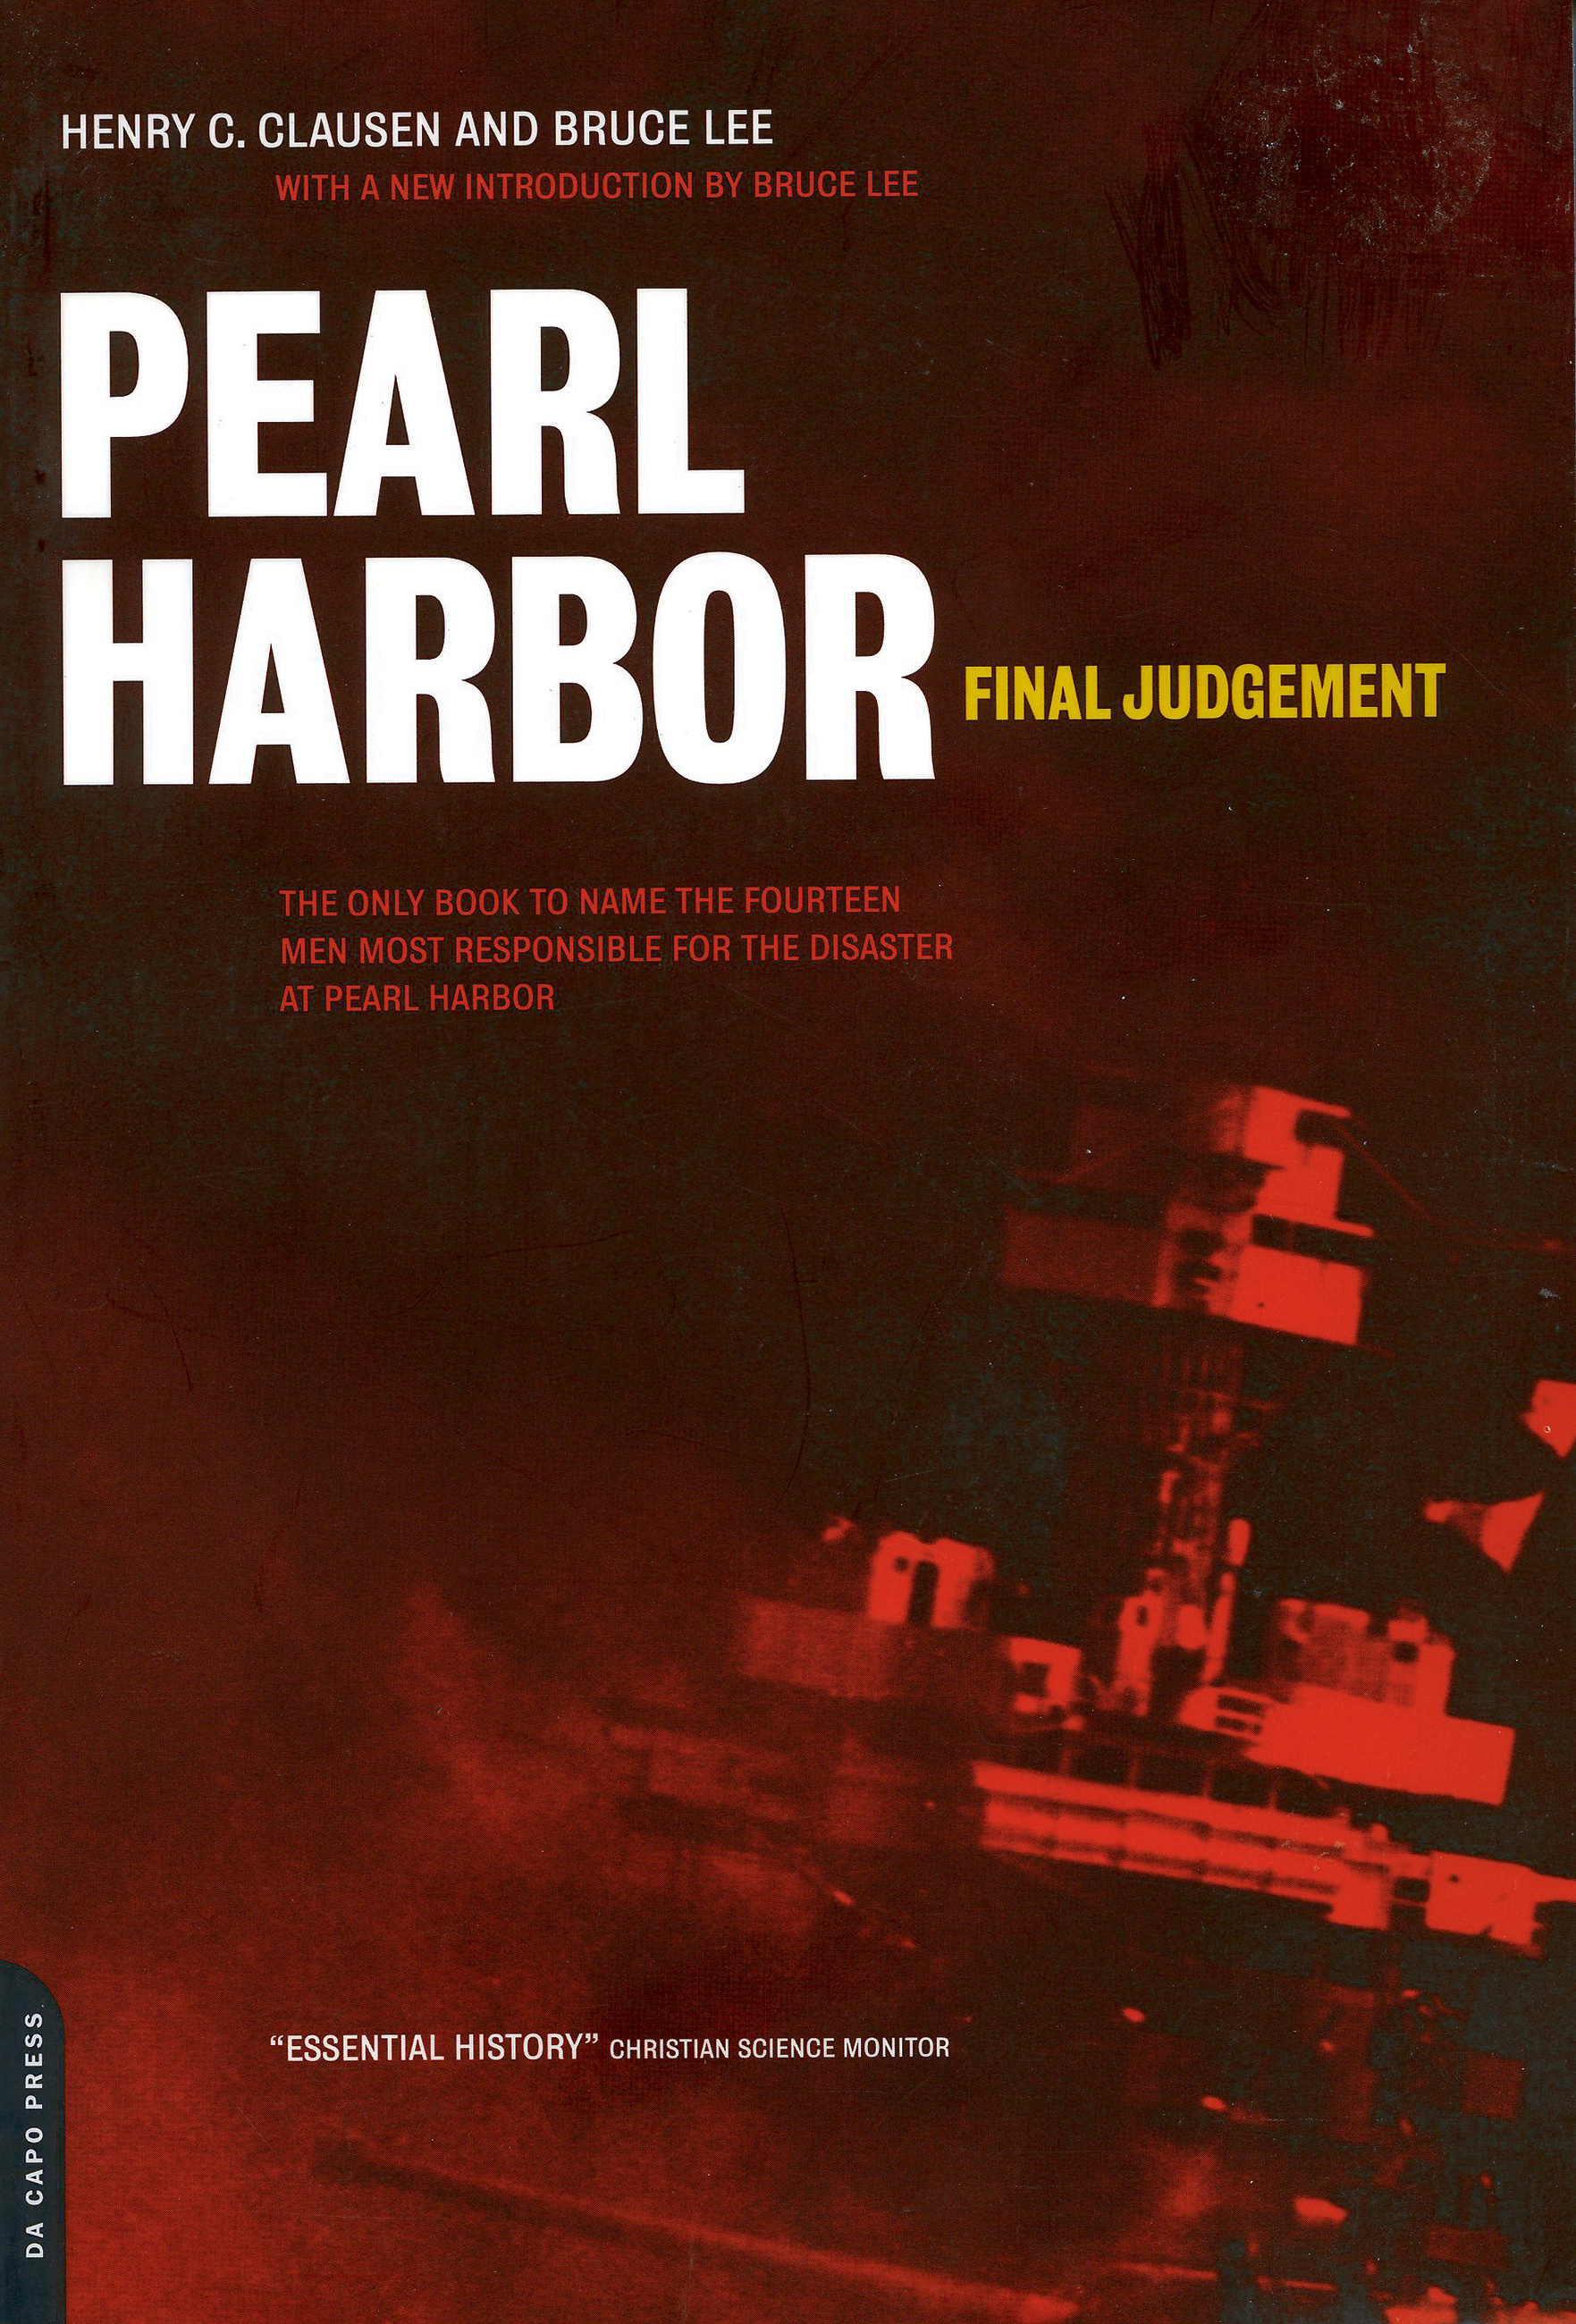 the untold story of pearl harbor Last chance to save pearl harbor the radar unit at opana the warning fell on deaf ears at dawn we slept: the untold story of pearl harbor.